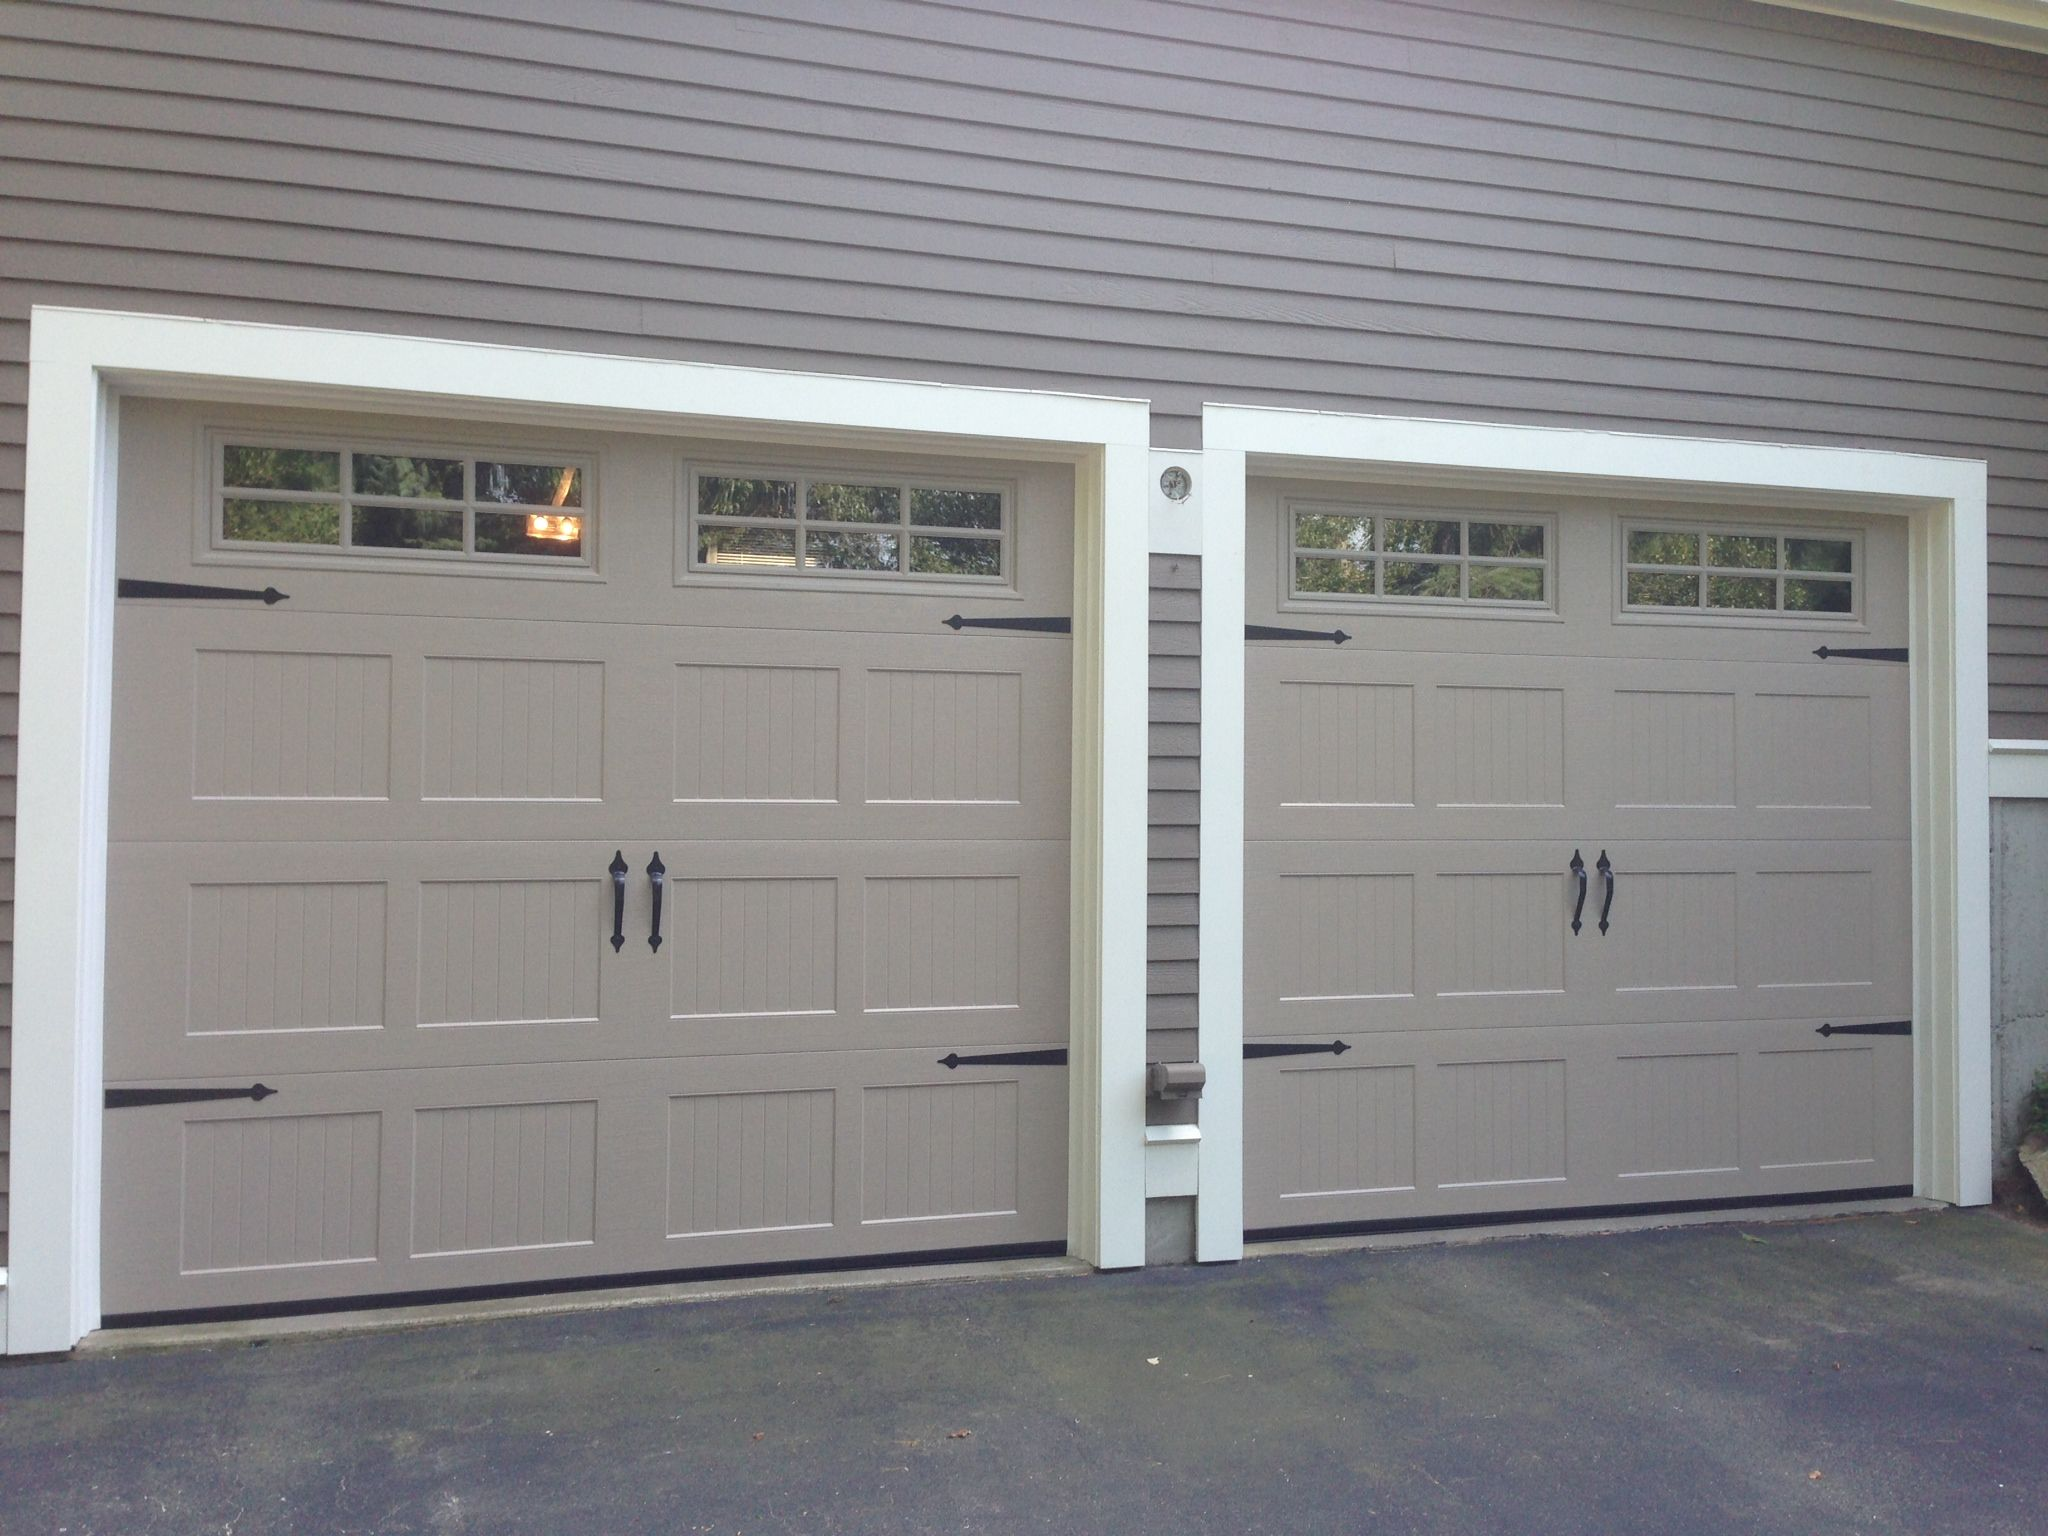 Haas model 2060 steel carriage house style garage doors in for Garage doors